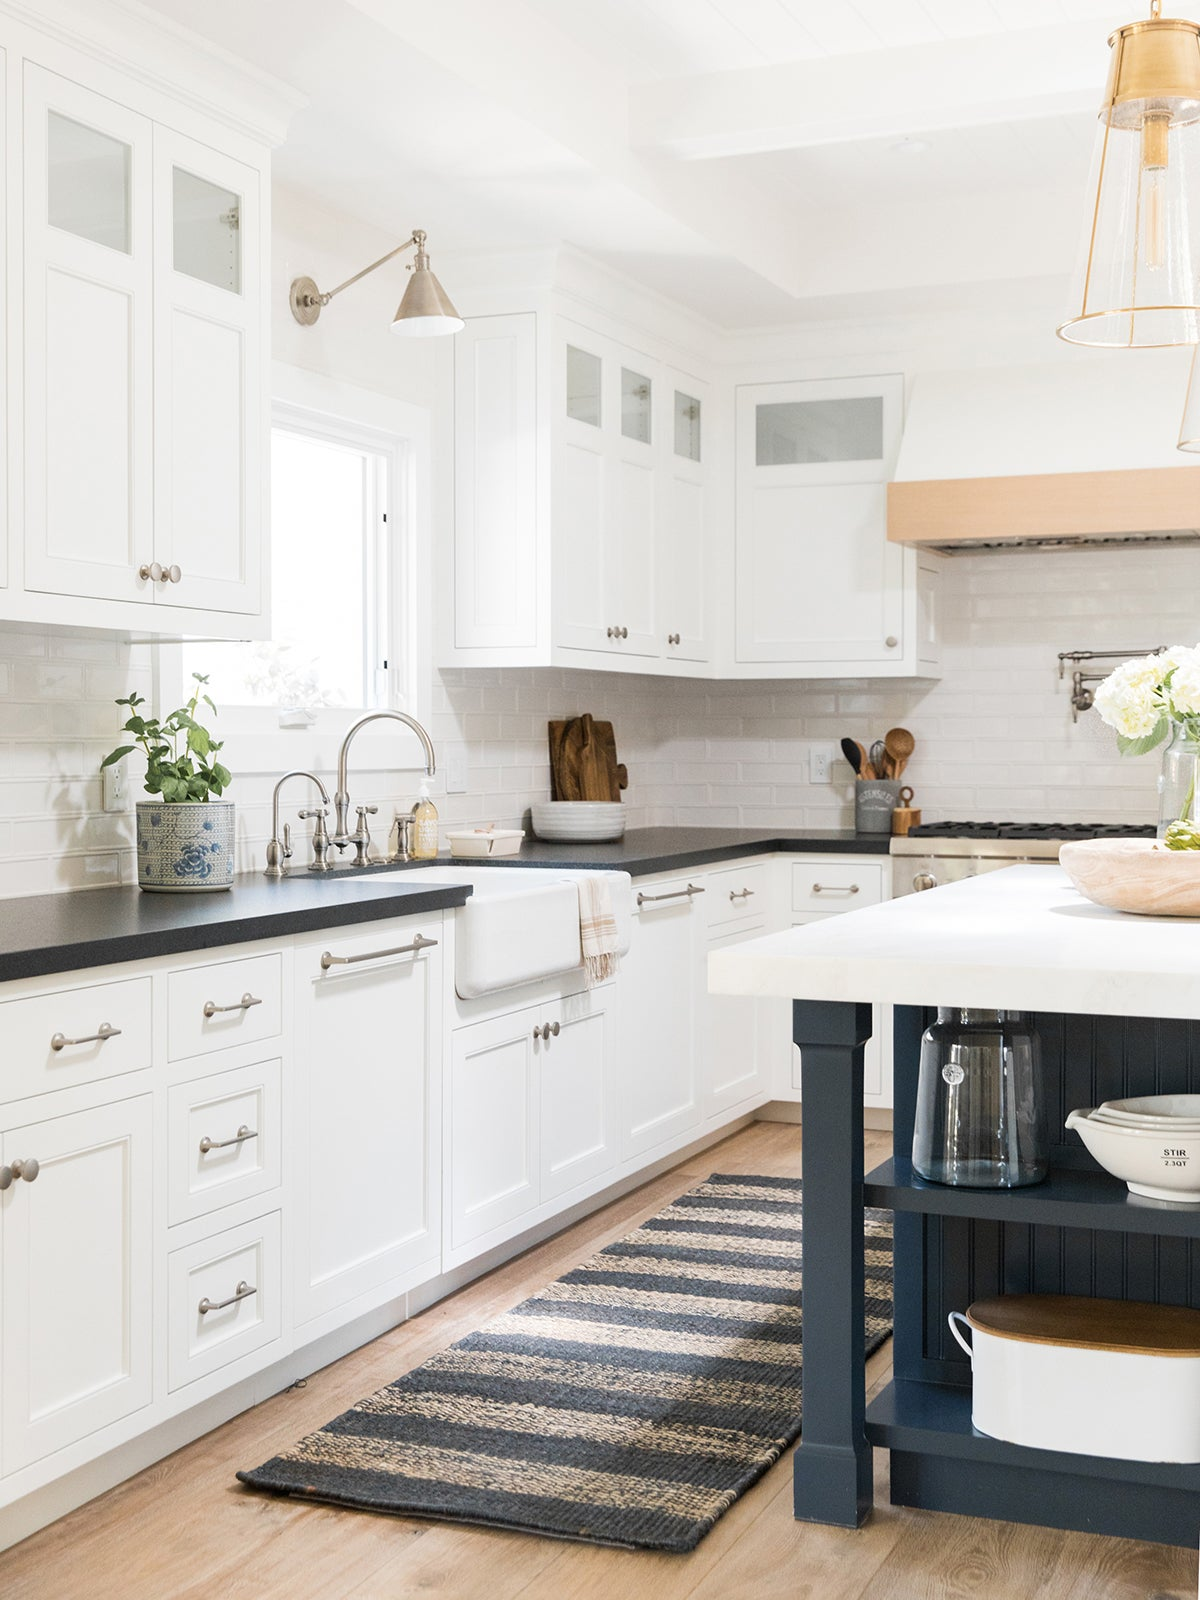 8 White Kitchen Cabinet Ideas You Can't Call Vanilla